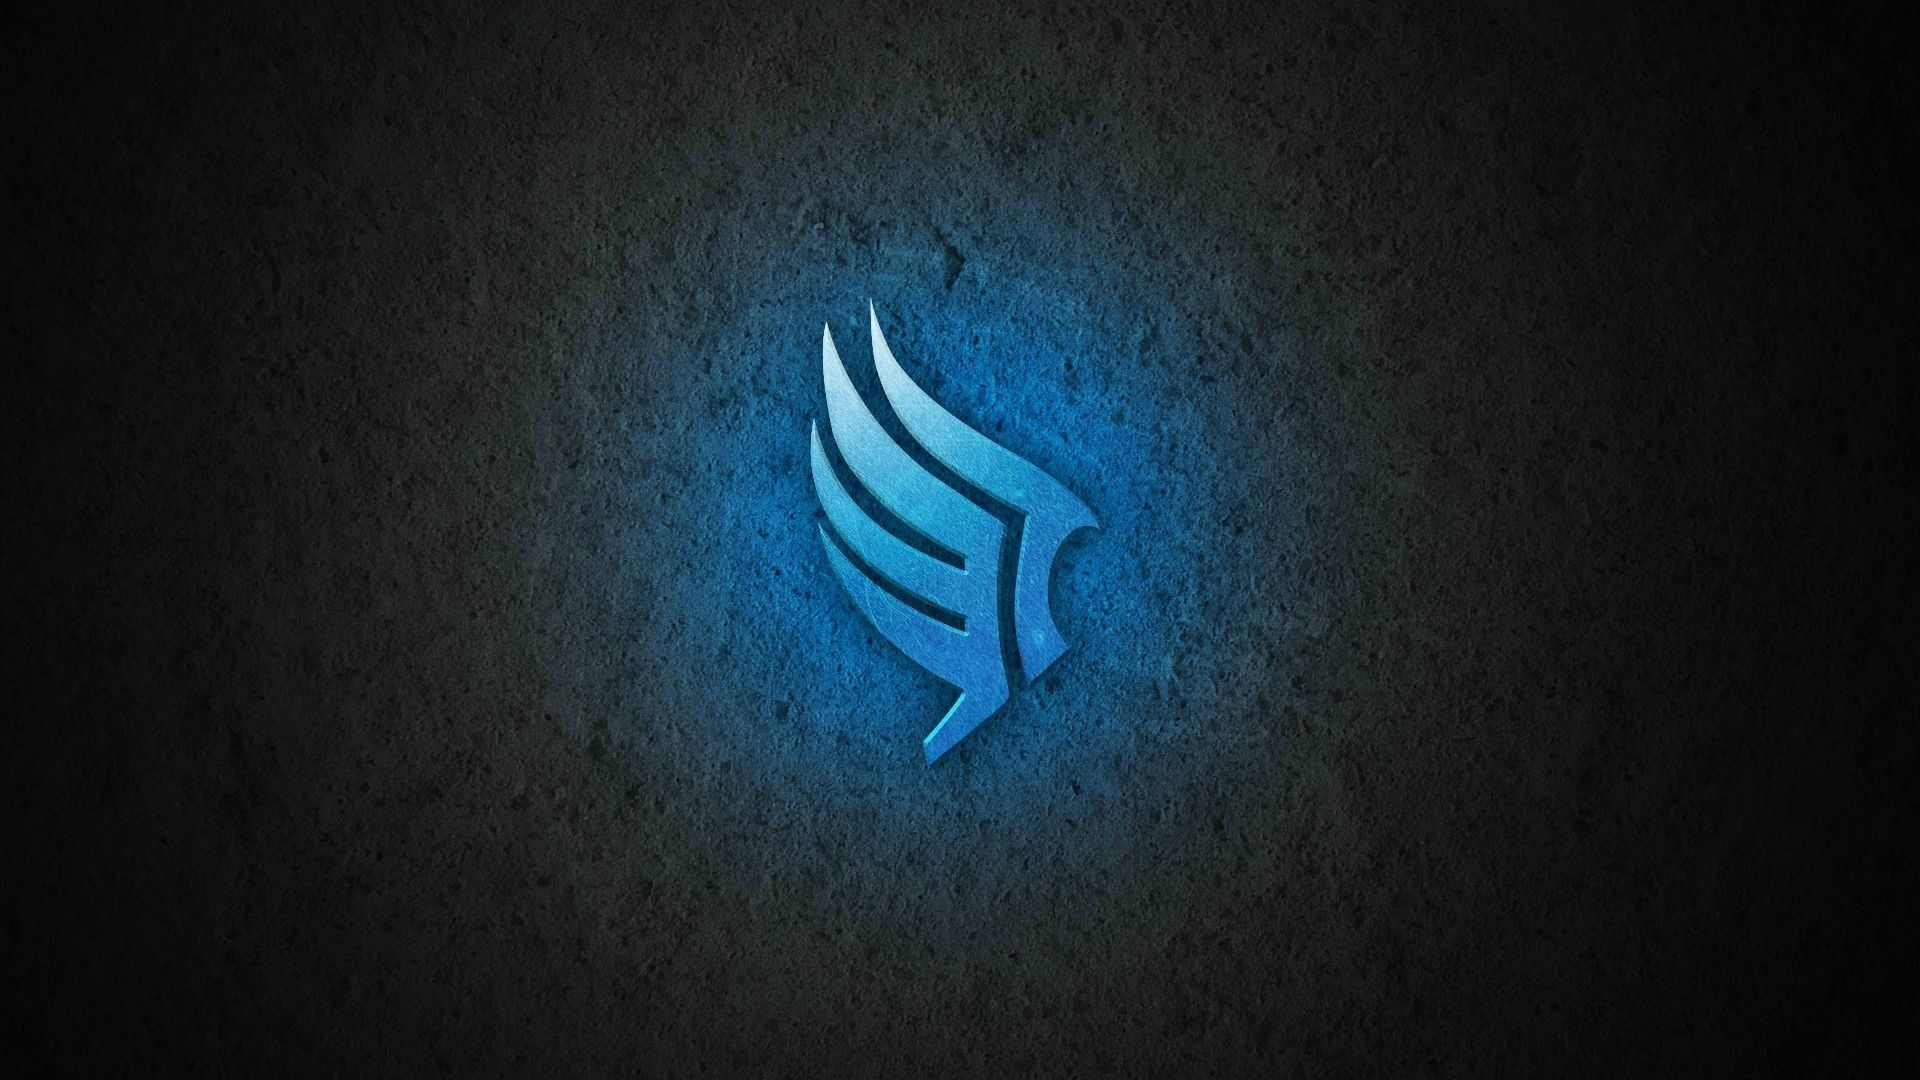 1920x1080 78+ Blue Gaming Wallpapers on WallpaperPlay